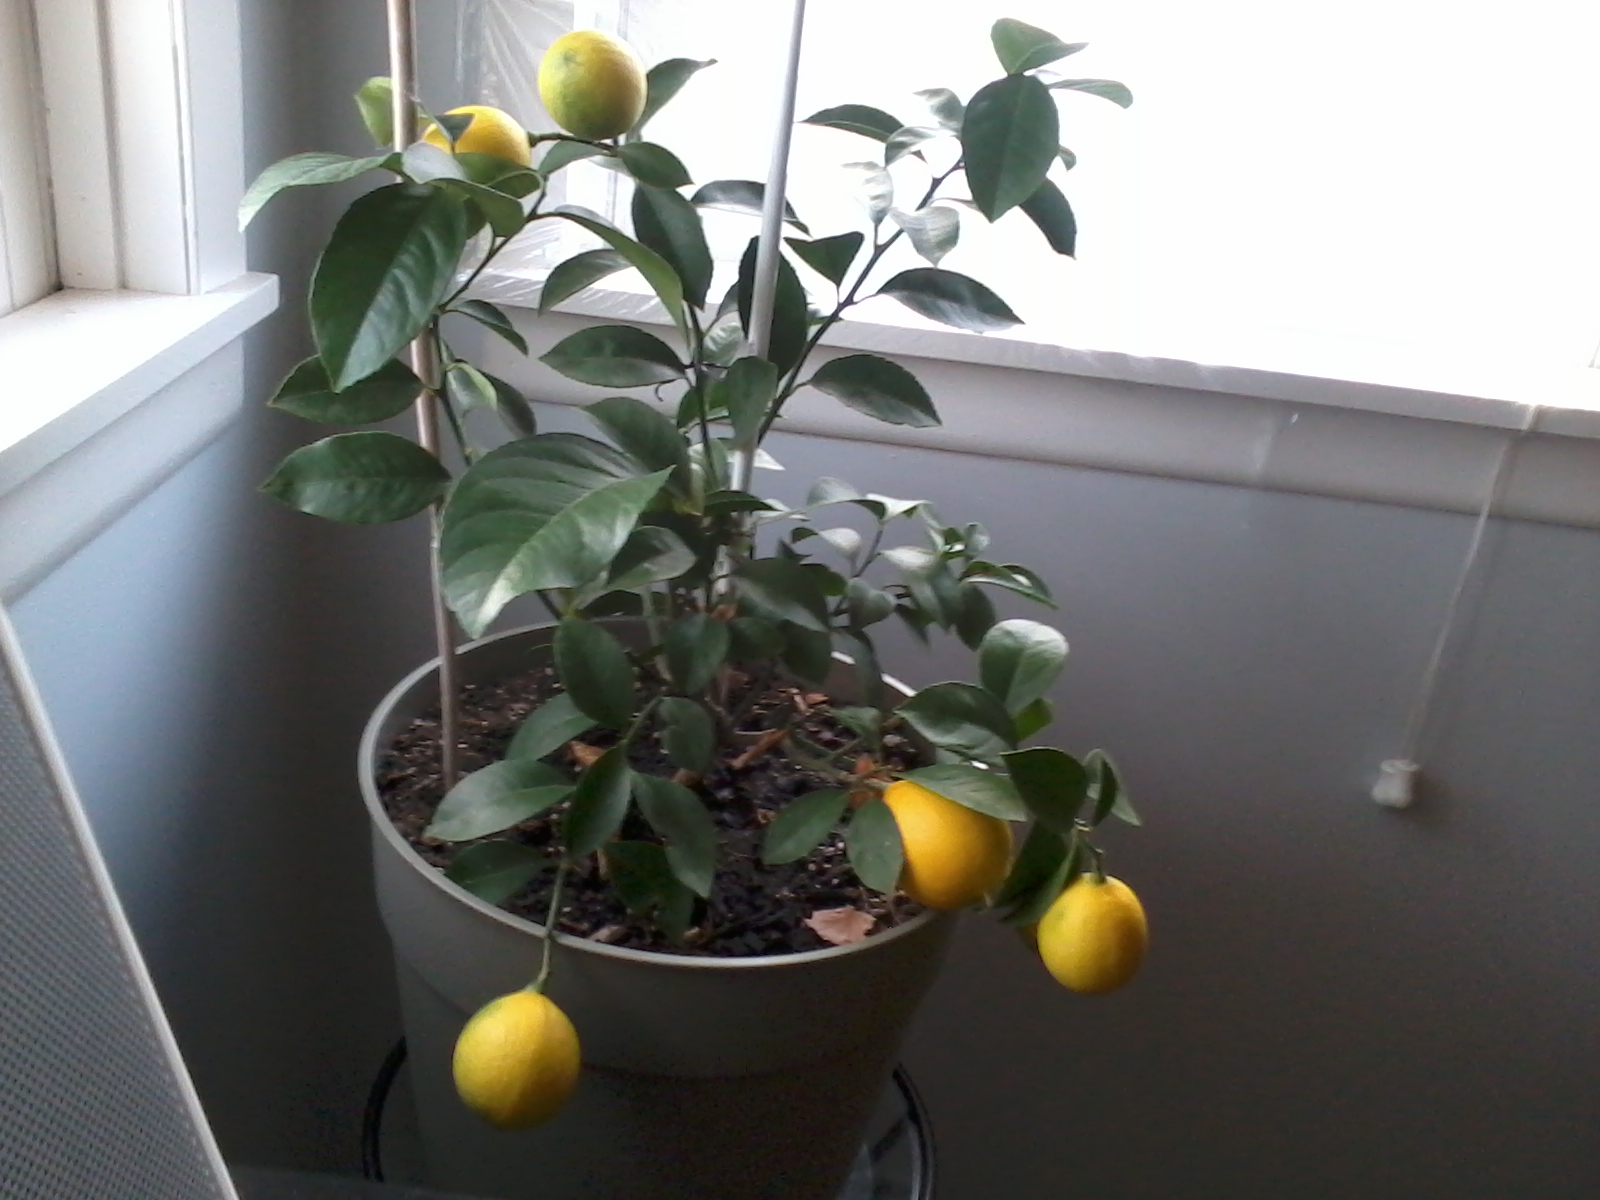 Grow your own citrus year round - even in the frigid North!